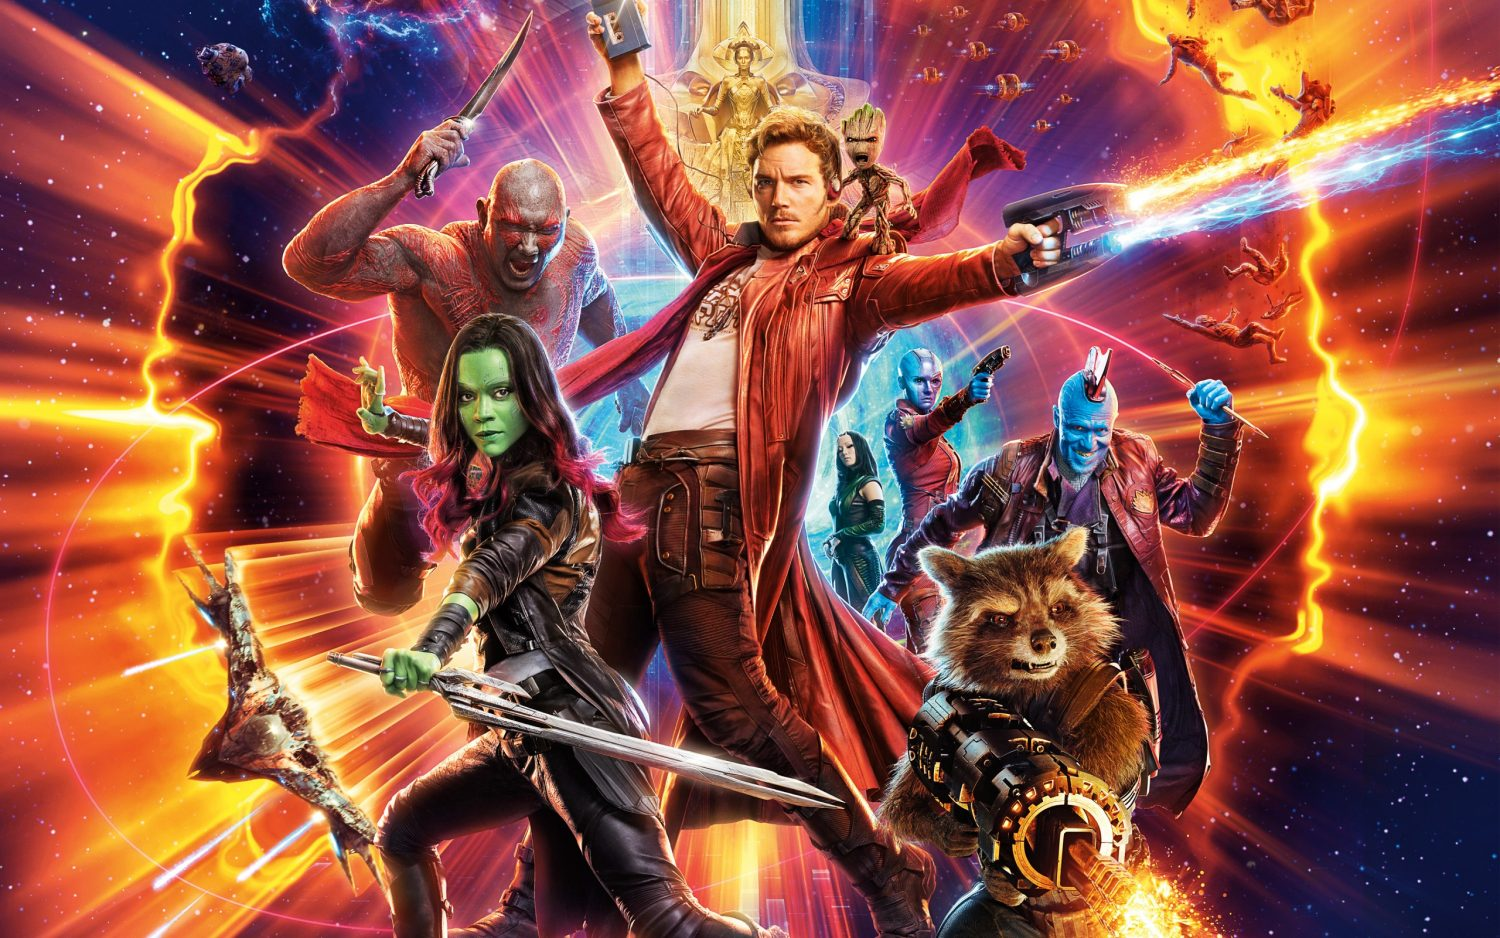 Crítica: Guardiões da Galáxia – Vol. 2 (Guardians of the Galaxy Vol.2, EUA, 2017)